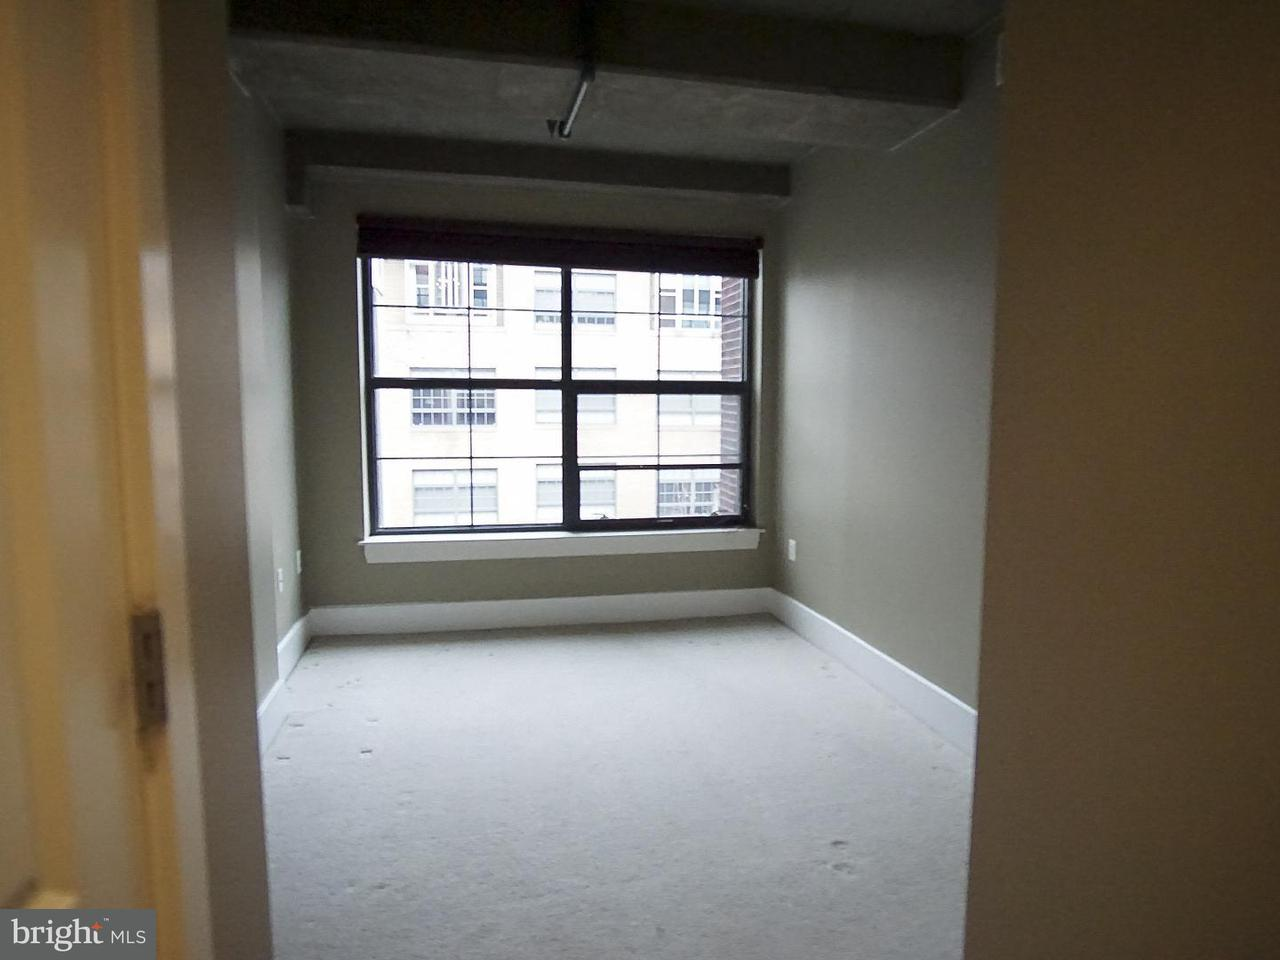 Additional photo for property listing at 1440 Church St Nw #404 1440 Church St Nw #404 Washington, Distretto Di Columbia 20005 Stati Uniti